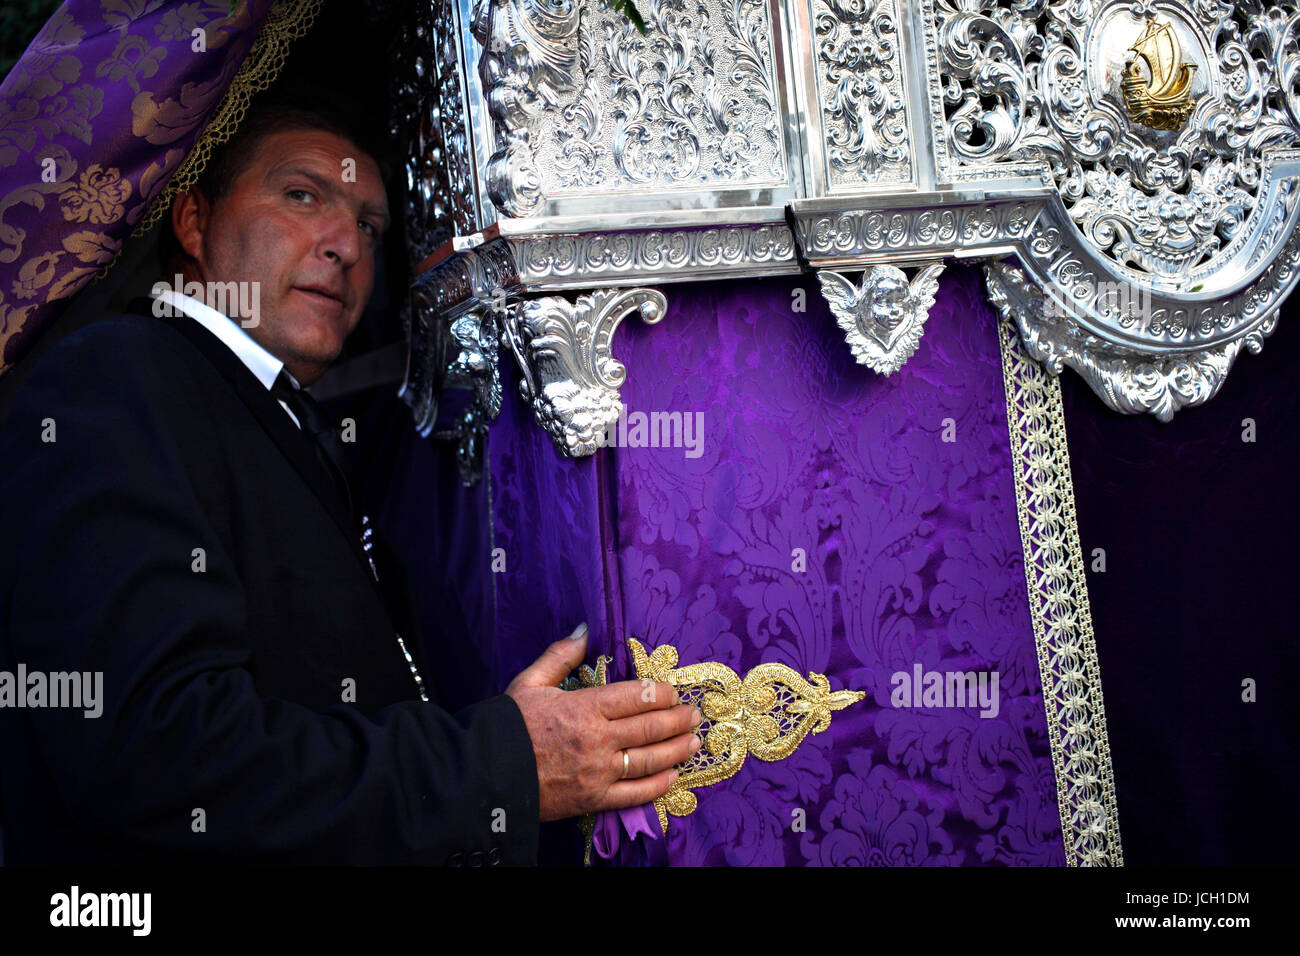 A capataz (forman) stands under the pallium of Our Lady of Tears (Nuestra Señora de las Lágrimas) during - Stock Image